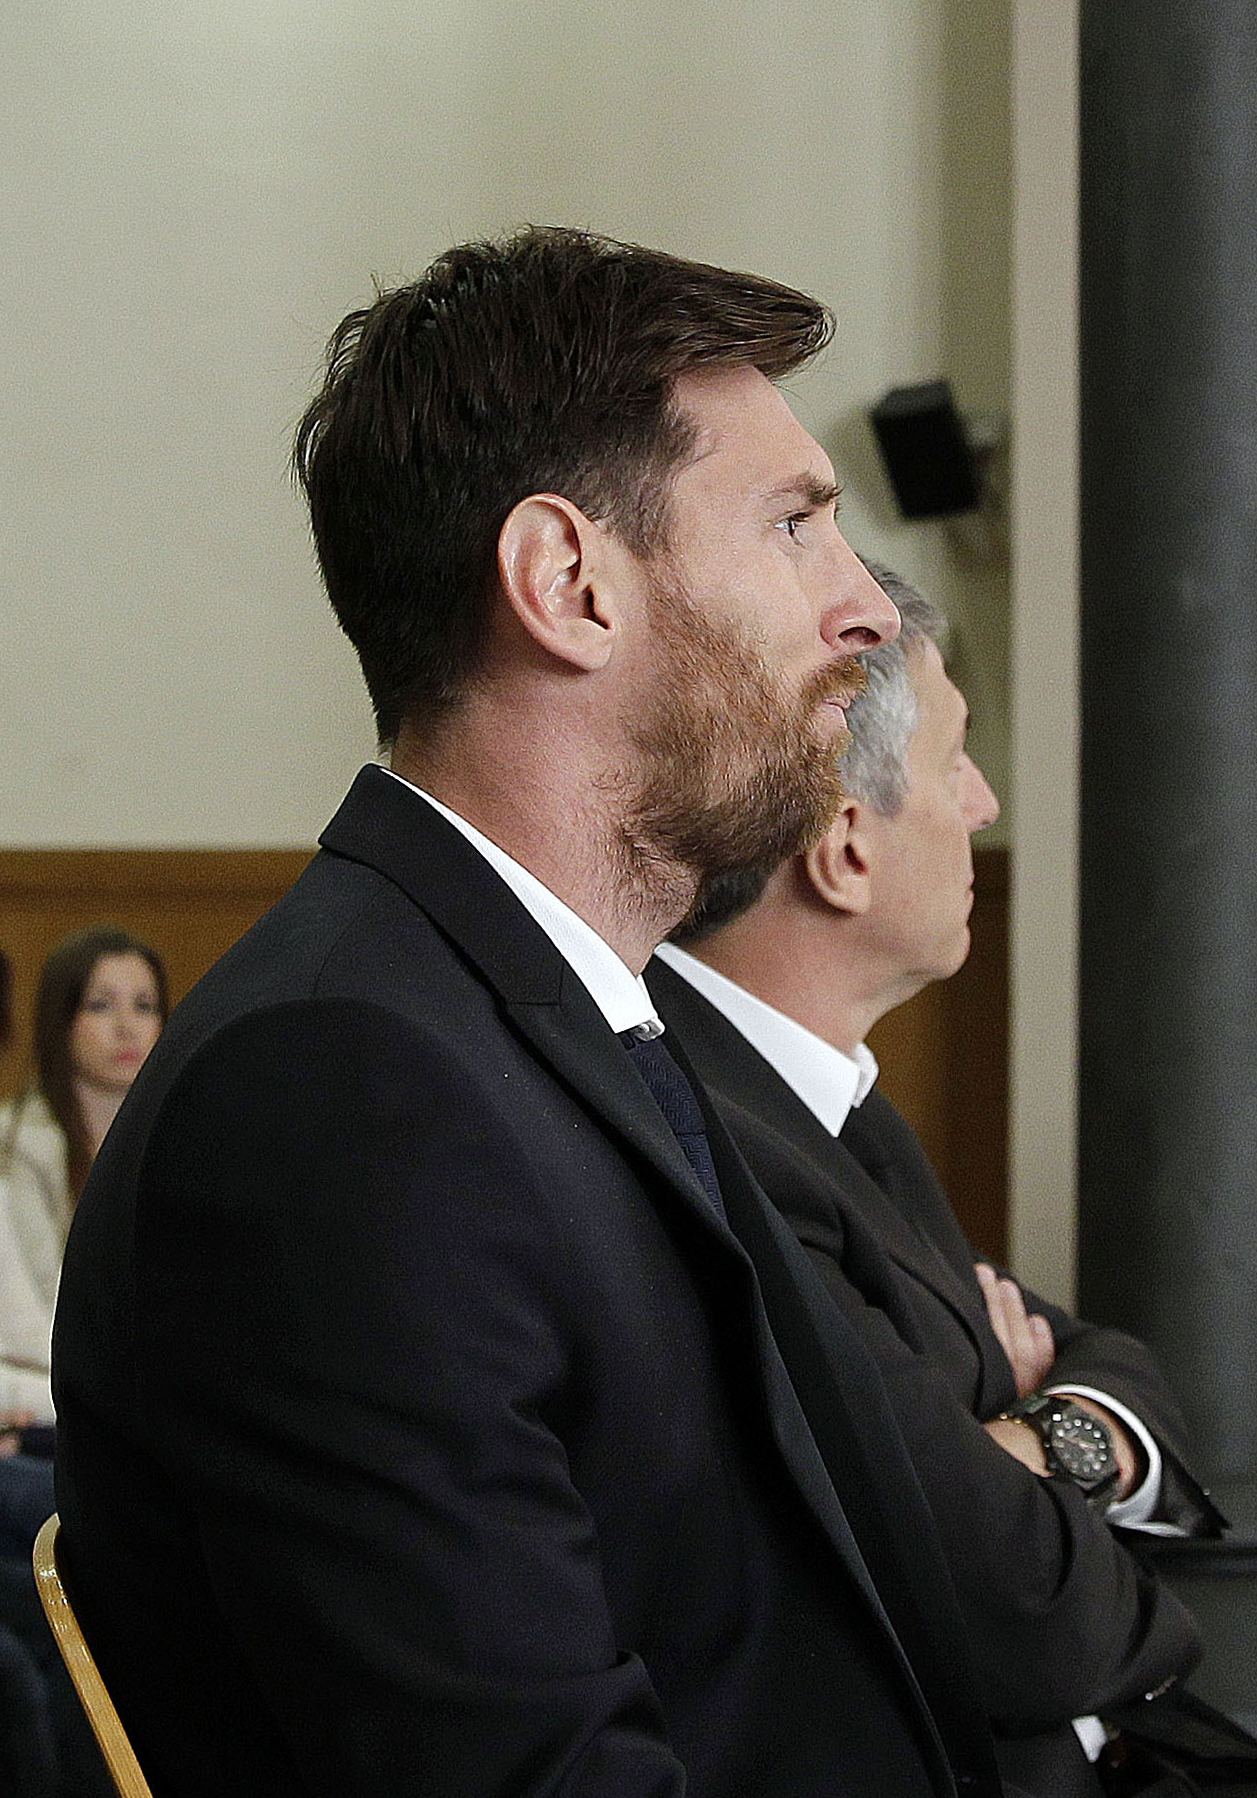 Barcelona's football star Lionel Messi (R) and his father Jorge Horacio Messi listen as they face judges in a tax fraud case at the courthouse of Barcelona on June 2, 2016. The 28-year-old football star was cheered and jeered as he emerged from a van accompanied by his father Jorge Horacio Messi. The two are accused of using a chain of fake companies in Belize and Uruguay to avoid paying taxes on 4.16 million euros ($4.6 million) of Messi's income earned through the sale of his image rights from 2007-09. AFP PHOTO/ POOL/ ALBERTO ESTEVEZ / AFP PHOTO / POOL / Alberto Estevez